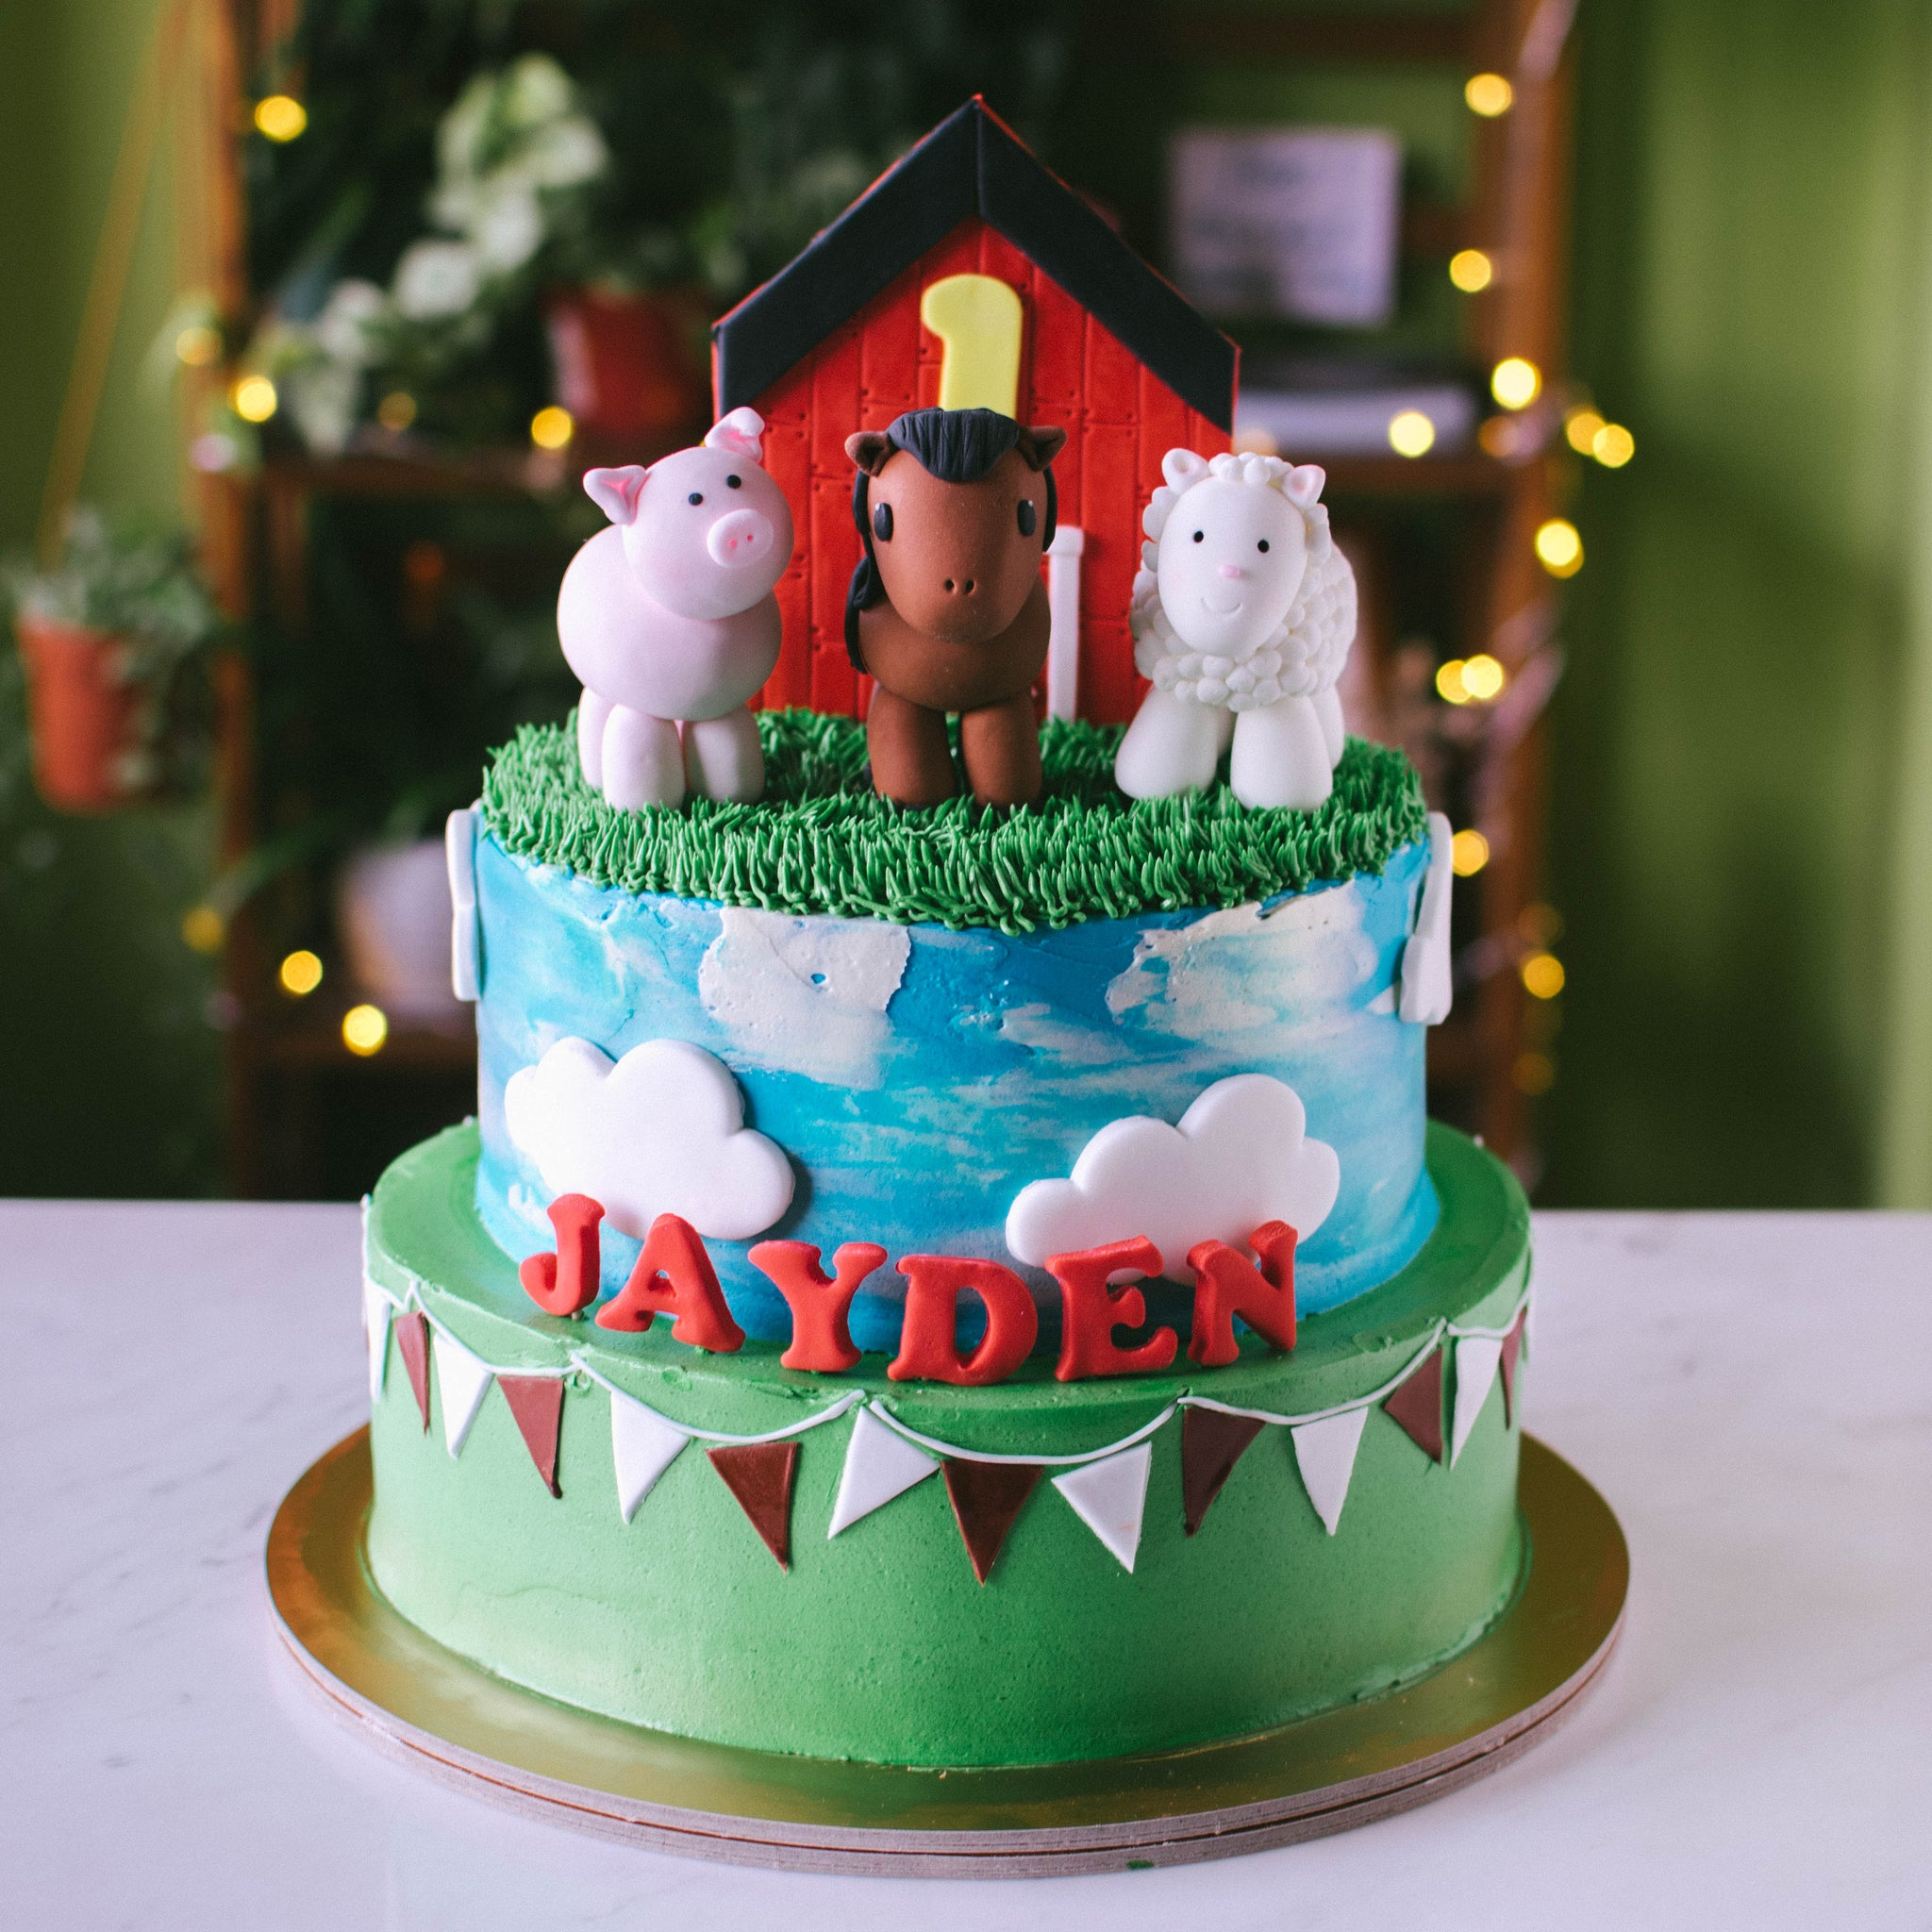 Two-Tier Barnyard Cake - Custom Bakes by Edith Patisserie